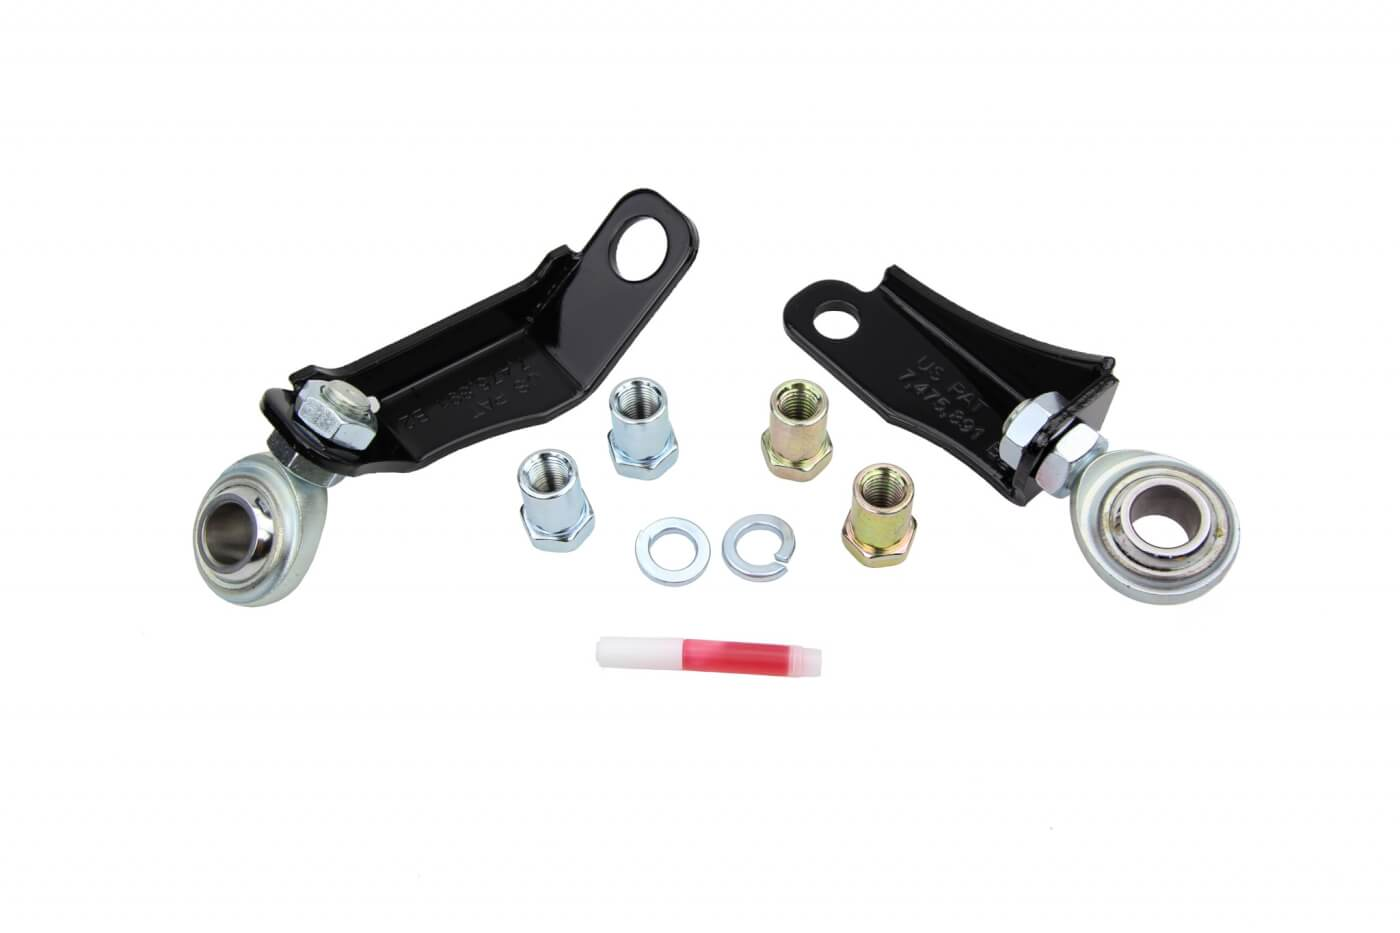 8. These small but simple items make up the Cognito pitman arm and idler arm brace kit. The stock components move around as you steer your truck down the road. Stiffening the mounting improves steering feel and response.